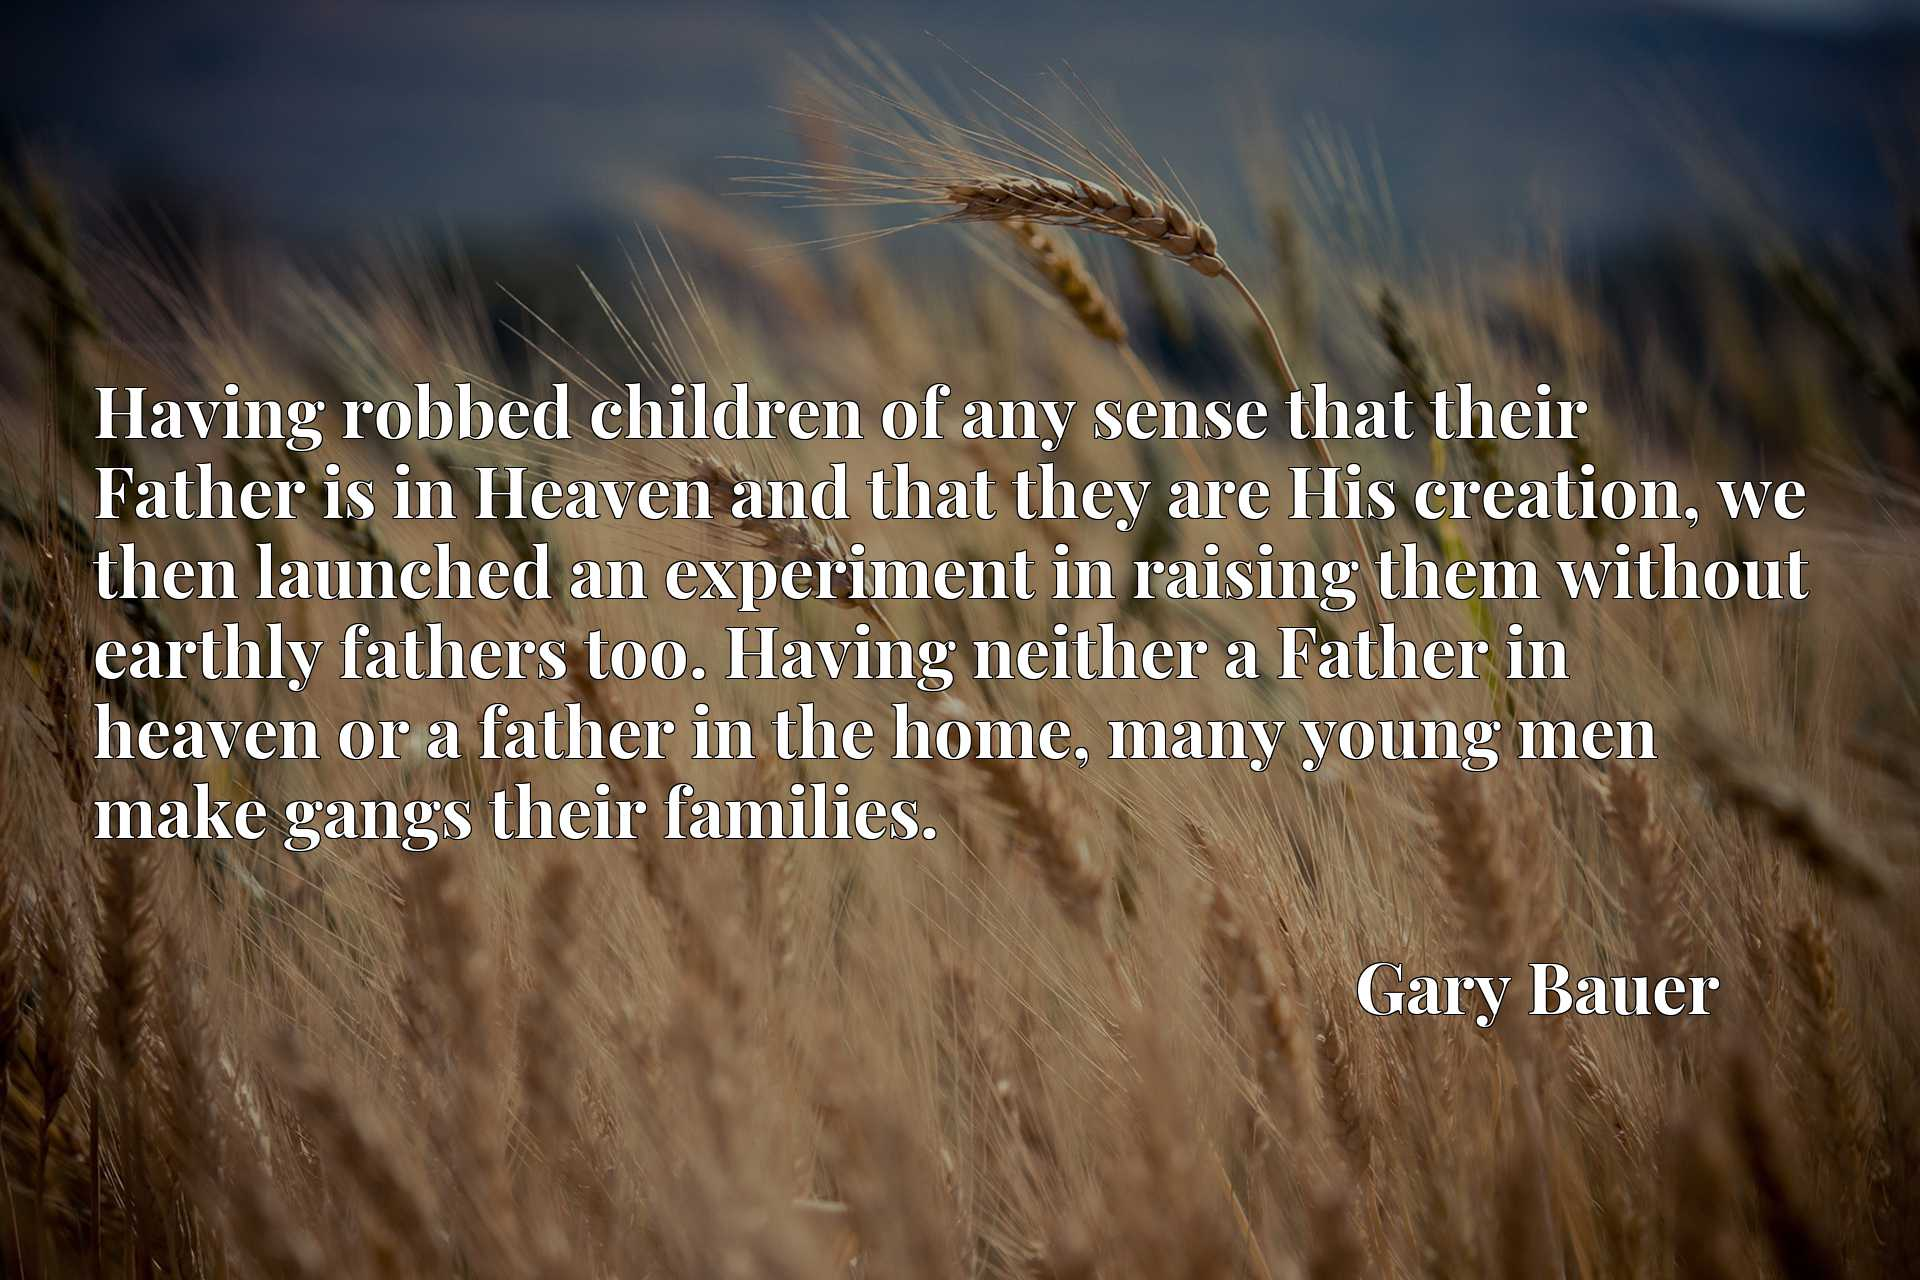 Having robbed children of any sense that their Father is in Heaven and that they are His creation, we then launched an experiment in raising them without earthly fathers too. Having neither a Father in heaven or a father in the home, many young men make gangs their families.